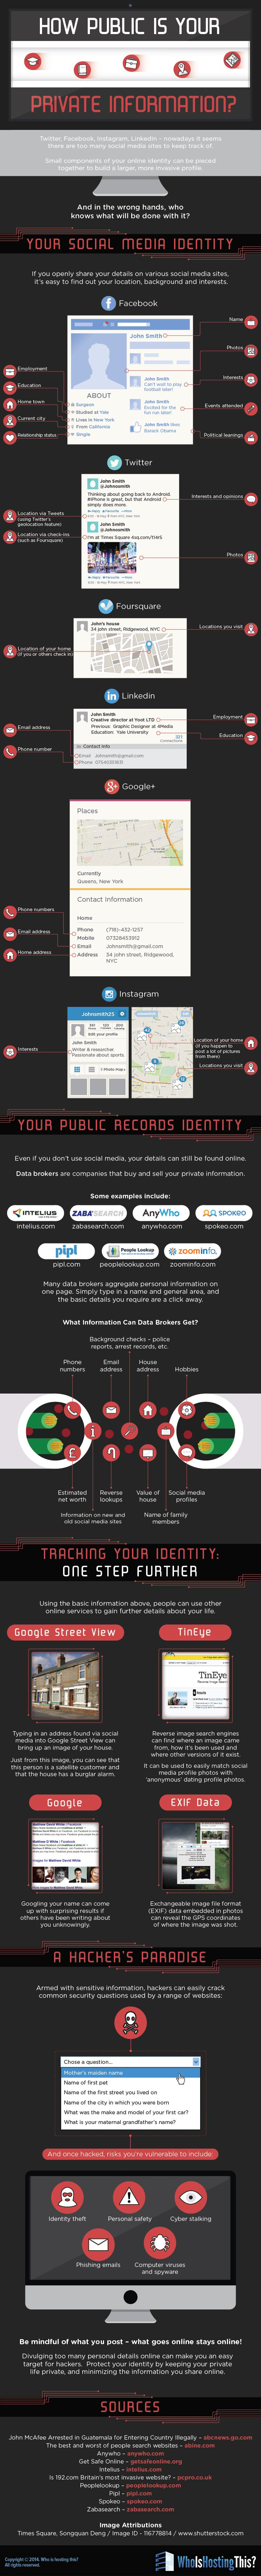 How Public Is Your Private Information? [Infographic]